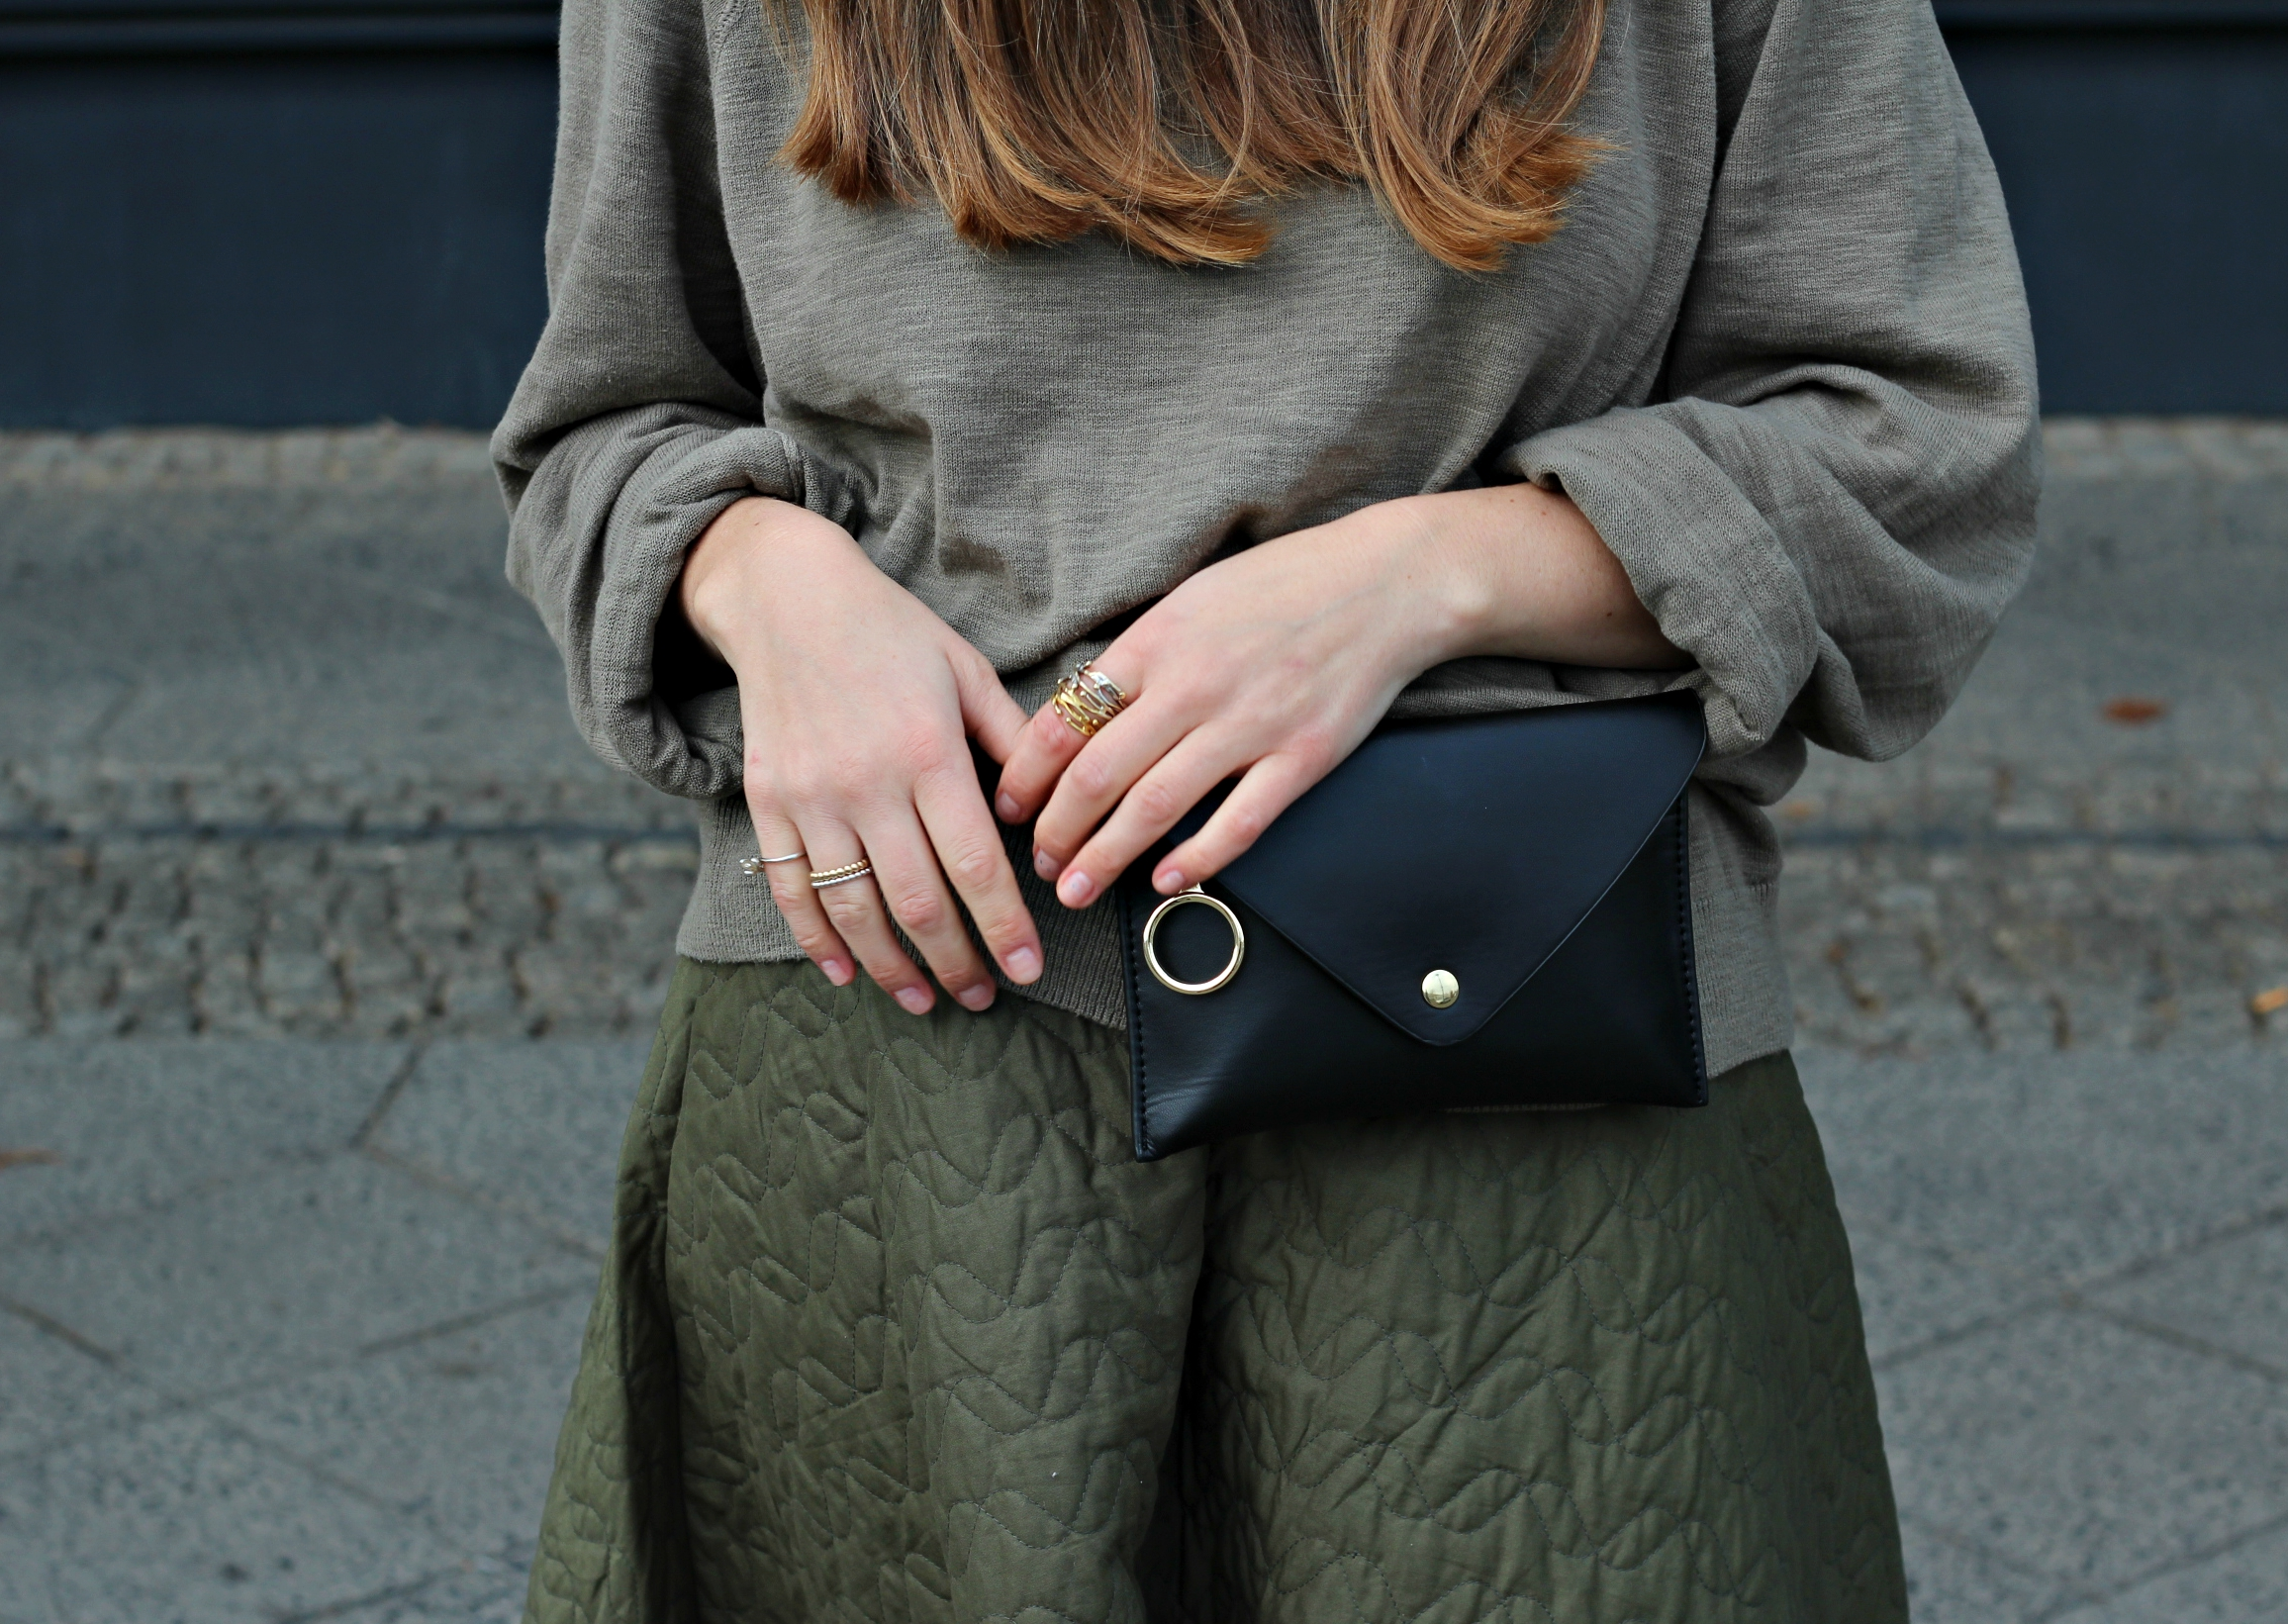 annaporter-green-skirt-uniqlo-shabbiesamsterdam-belt-bag-details